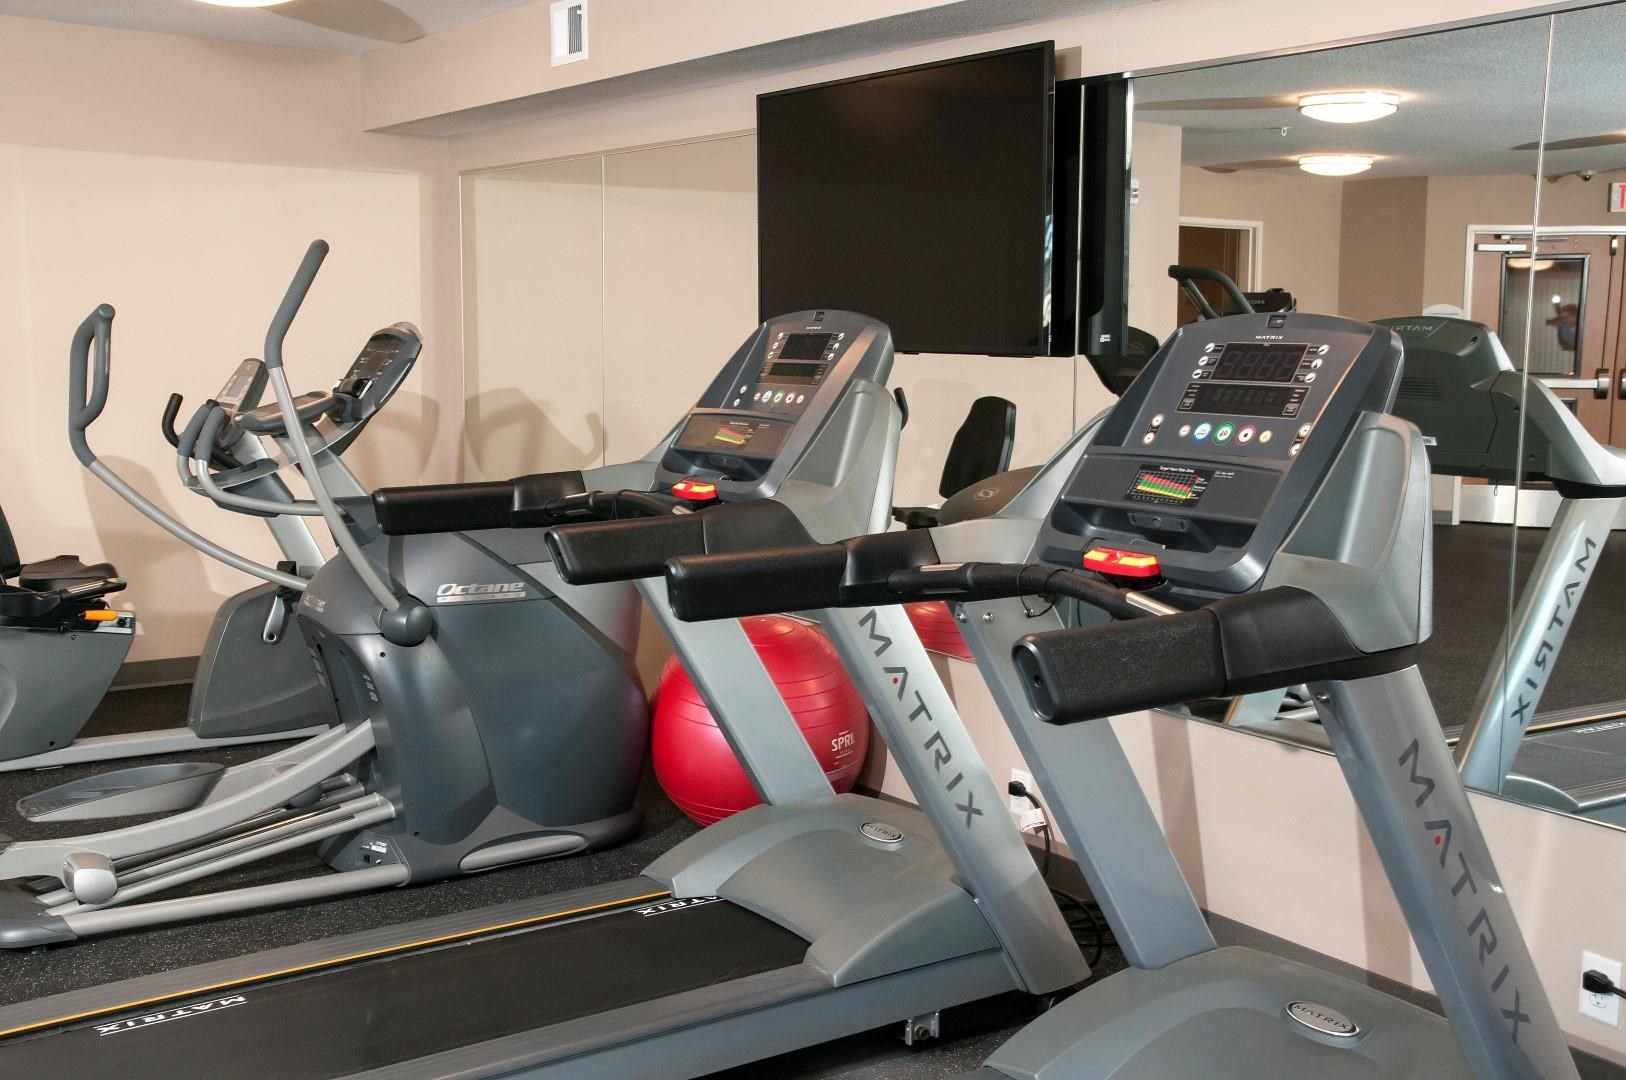 Fitness studio in Carver MN Apartment Building with Cardio Equipment